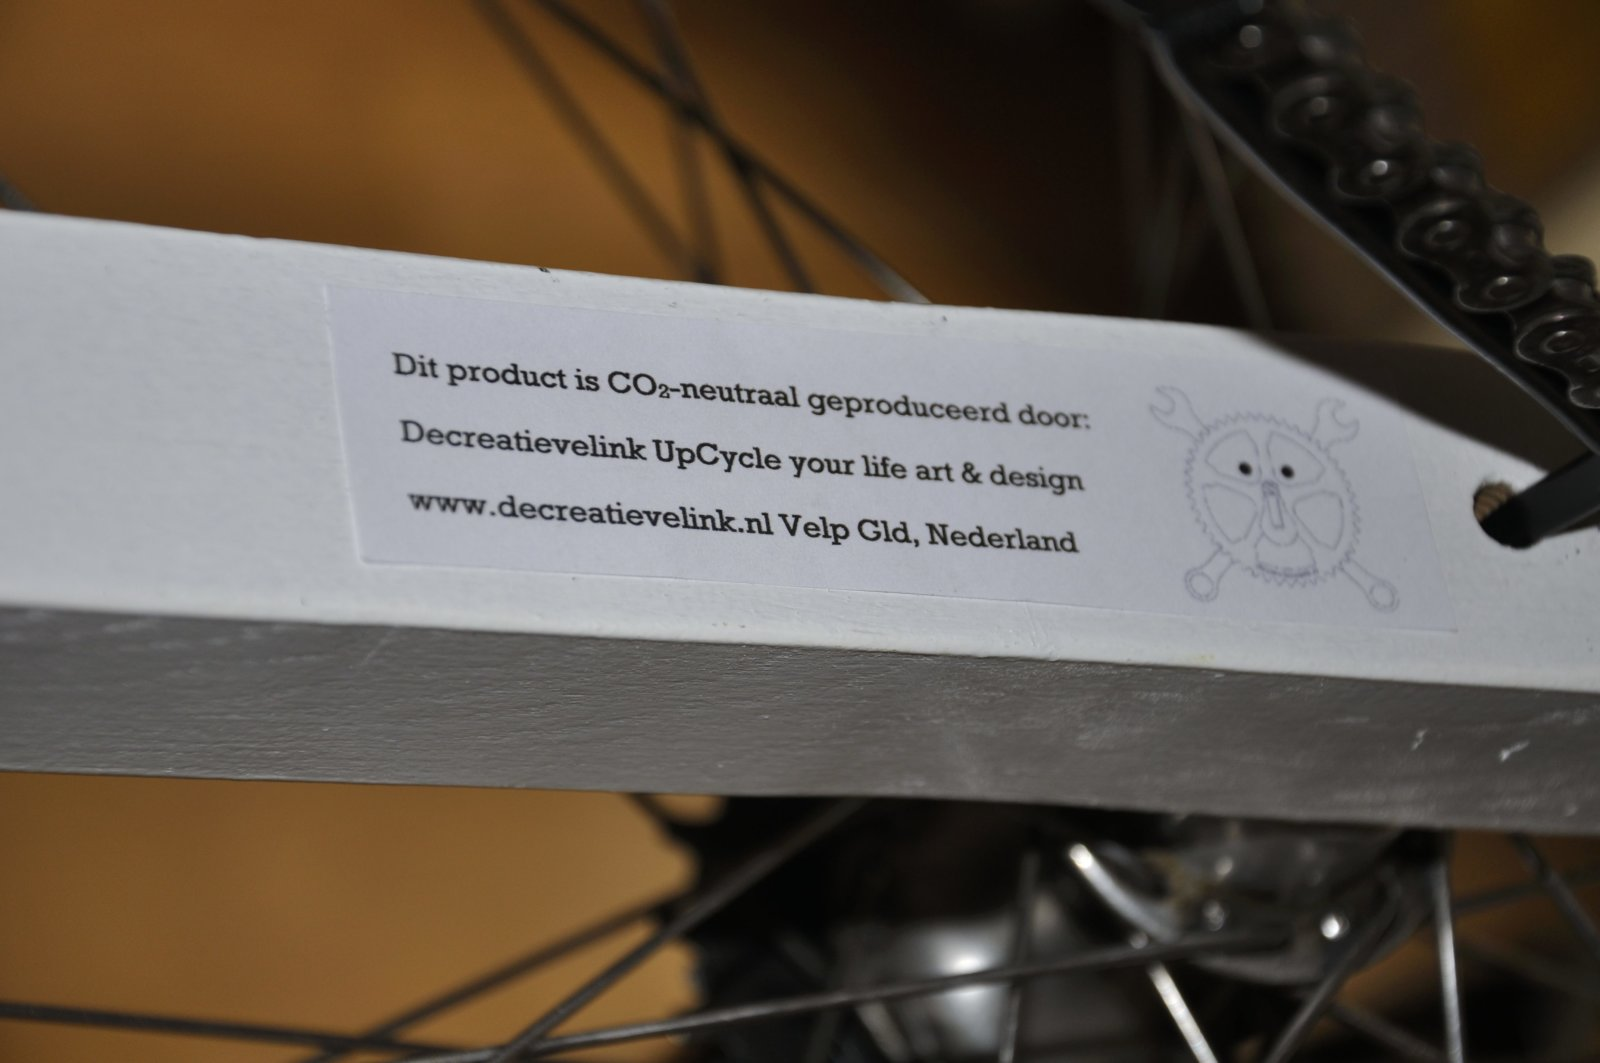 Lichtfiets Productinfo CO2 Neutraal Geproduceerd In Velp